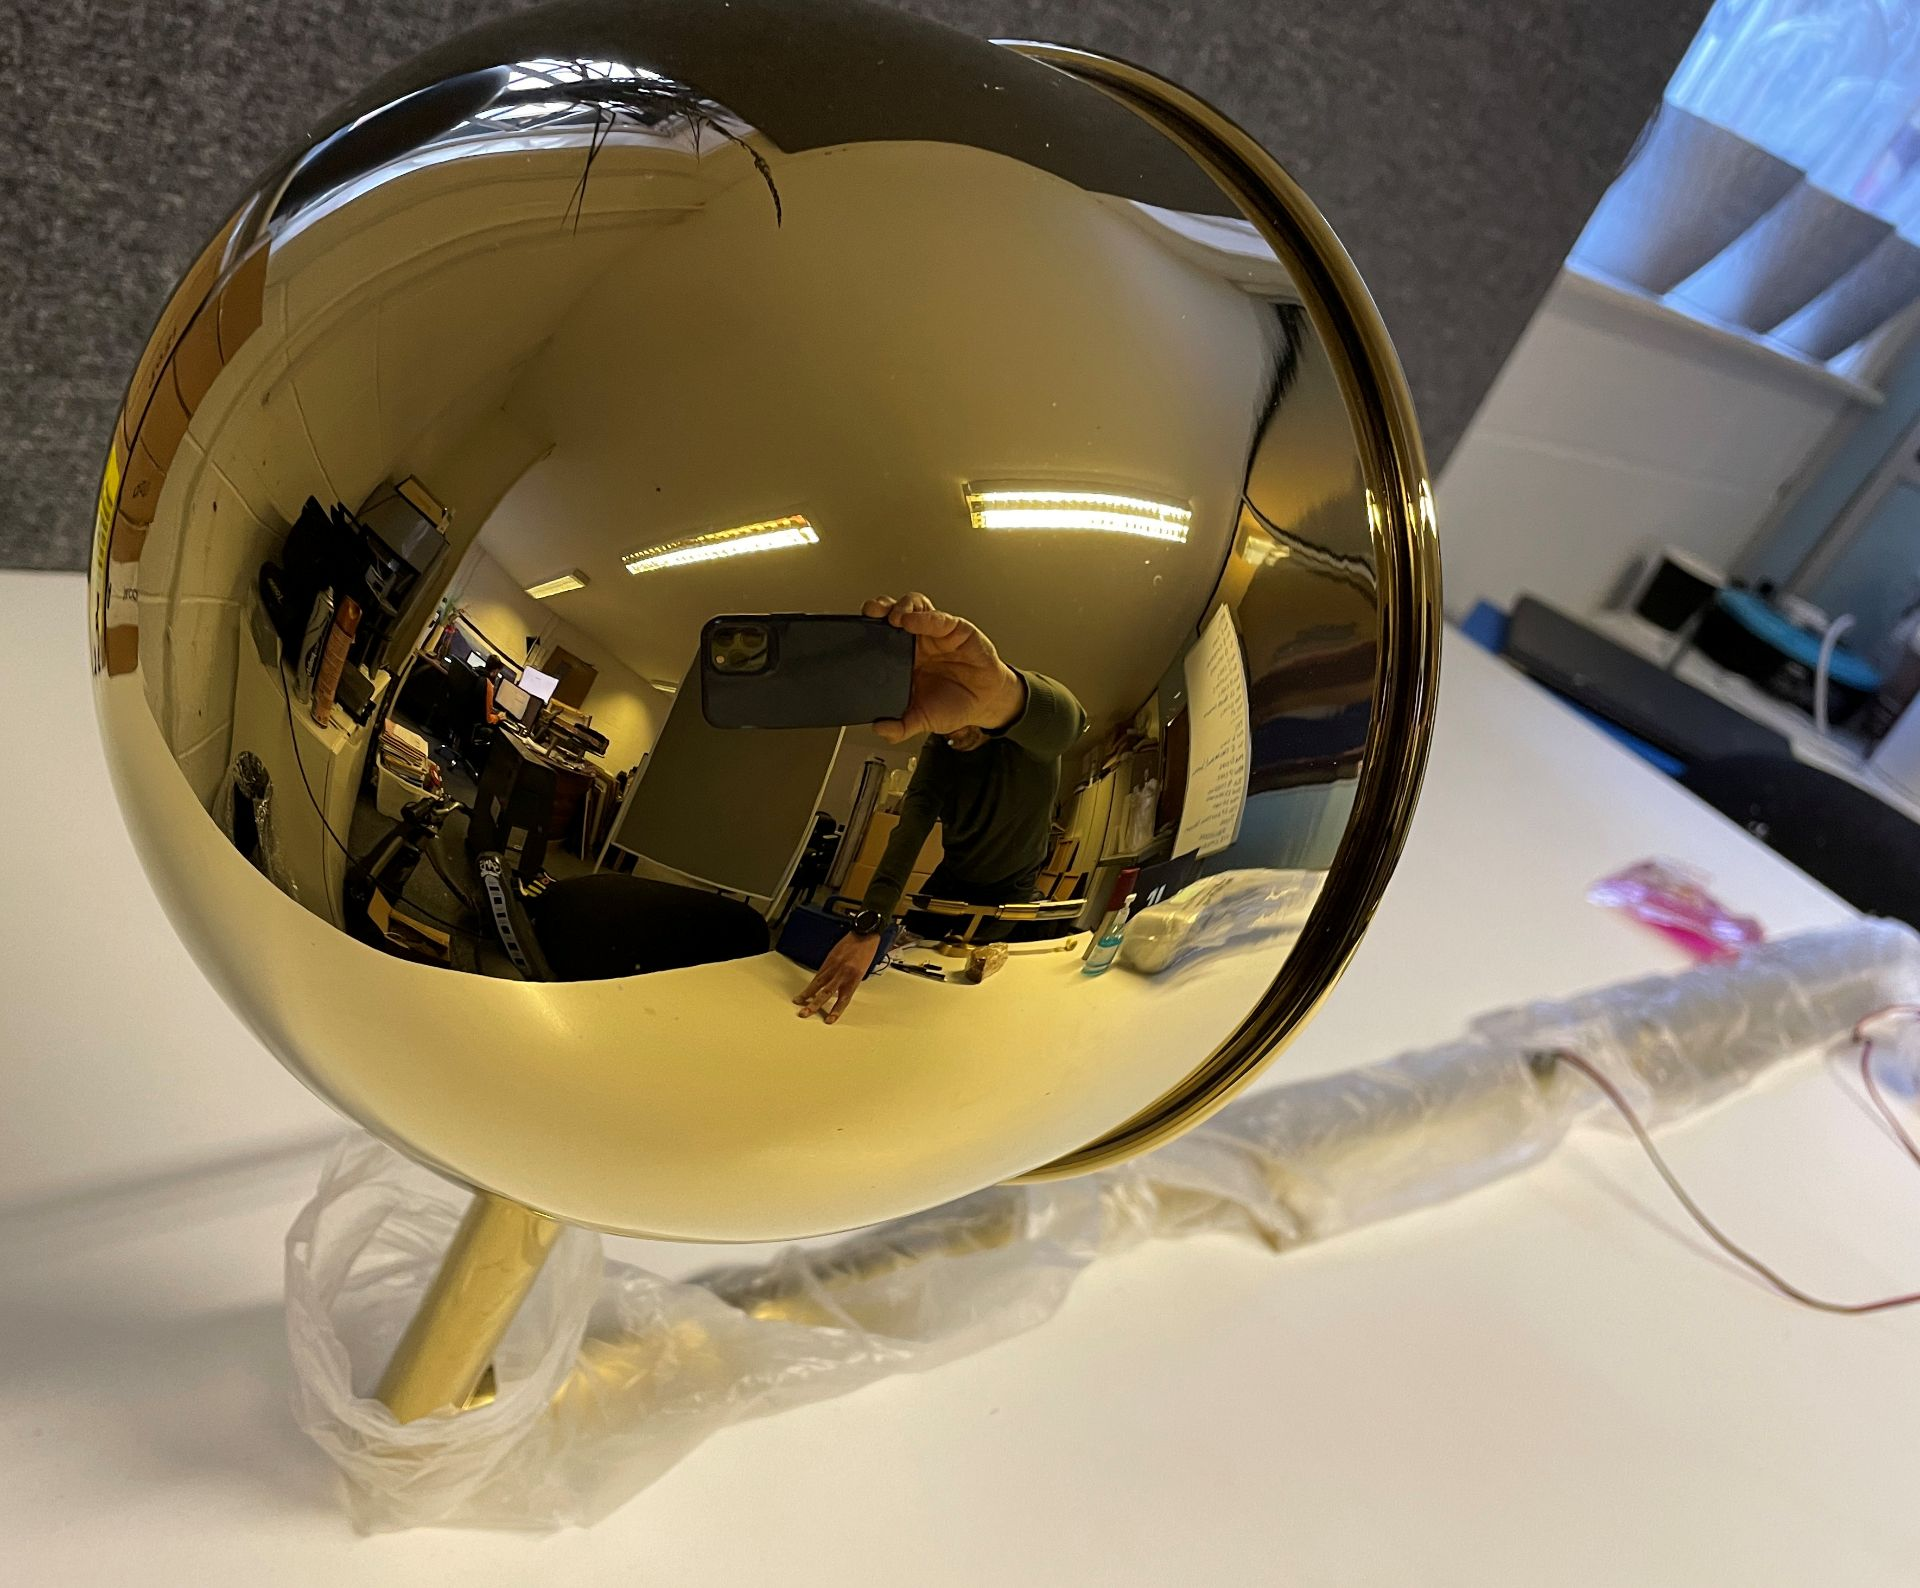 1 x Tall 119cm Polished Brass Wall Light with large adjustable round head (Diameter 21cm) with Wal - Image 15 of 18